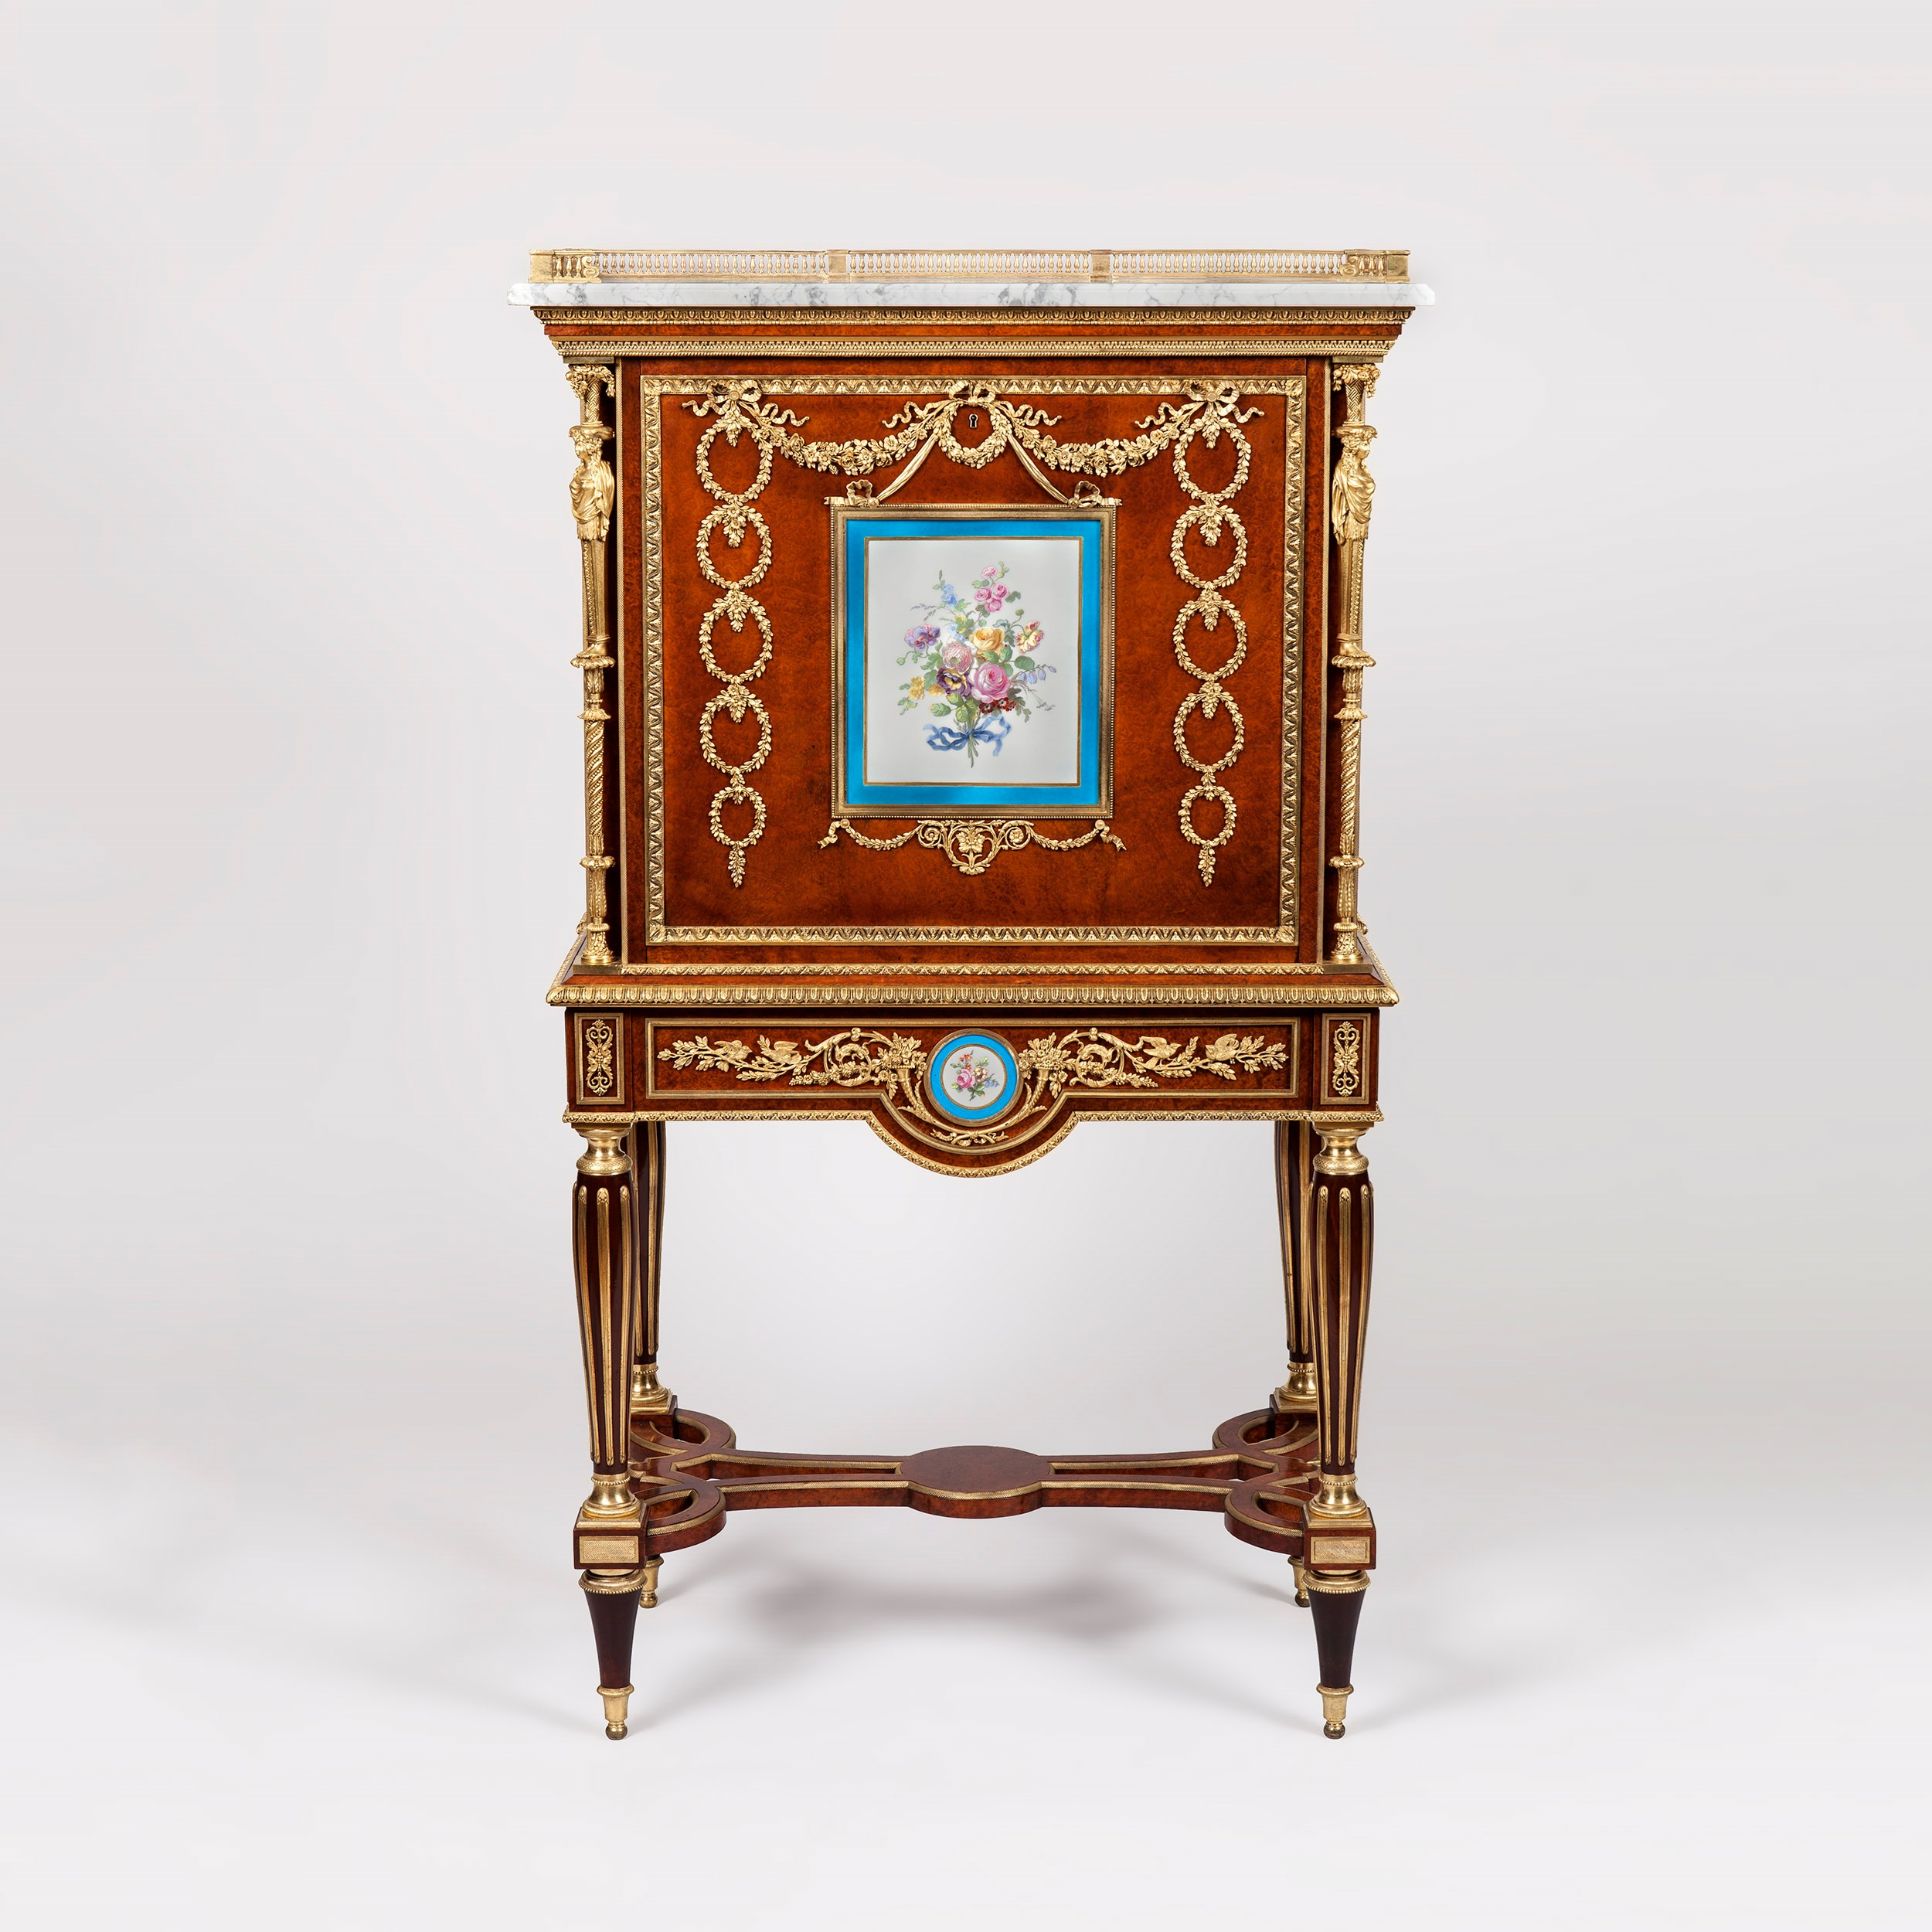 A Fine Escritoire After a Design by Adam Weisweiler  Constructed in amboyna, dressed with 'Sevres' porcelain plaques and gilt bronze mounts; rising from tapering circular legs, inlaid with brass, having bronze bases and capitols, and conjoined with an interlaced stretcher; the shaped apron, having a circular porcelain plaque and bronze foliates, houses a single cedar lined drawer, spring released by a concealed button; over, the secretaire, the drop flap fitted with a French lock, has a square bronze framed Sevres plaque, hand painted with roses within a  'bleu celeste' and gilt reserve, and extensive entrelac foliates, opens to reveal a fiddle back satinwood interior, fitted with an arrangement of three upper short drawers, and a lower single drawer, fitted with ring pulls; gilt bronze caryatids, in the form of festooned Grecian maids bearing baskets of flowers flank the fall-front, and the panelled sides are set with stiff leaf gilt bronze castings, and over, a thumb nail moulded white marble top is dressed with a three quarter arcaded bronze gallery. France, Circa 1870  Dimensions: H: 54 in / 137 cm  |  W: 32 in / 81 cm  |  D: 17 in / 43 cm  Provenance Christie Manson & Wood sale of pieces from the late Edward Huntley Walker and Edward Wertheimer collection, 1932, lot 43   The Metropolitan Museum of Art has in its collection a similar secrétaire à abattant attributed to Weisweiler, circa 1787 (accession no. 58.75.57). It is presumed that this was piece was originally located at Versailles and owned by Marie-Antoinette. After the angry mobs stormed Versailles in 1789, the royal family lived under house arrest in the Chateau des Tuileries. During this time the queen consigned her treasured possessions for safekeeping. An inventory of 1794 indicating royal seized furniture records a 'secretary with drop front, mounted with a large Sèvres plaque and ten medallions forming garlands.'   Our escritoire is of similar form to the model in the Metropolitan Museum of Art, p